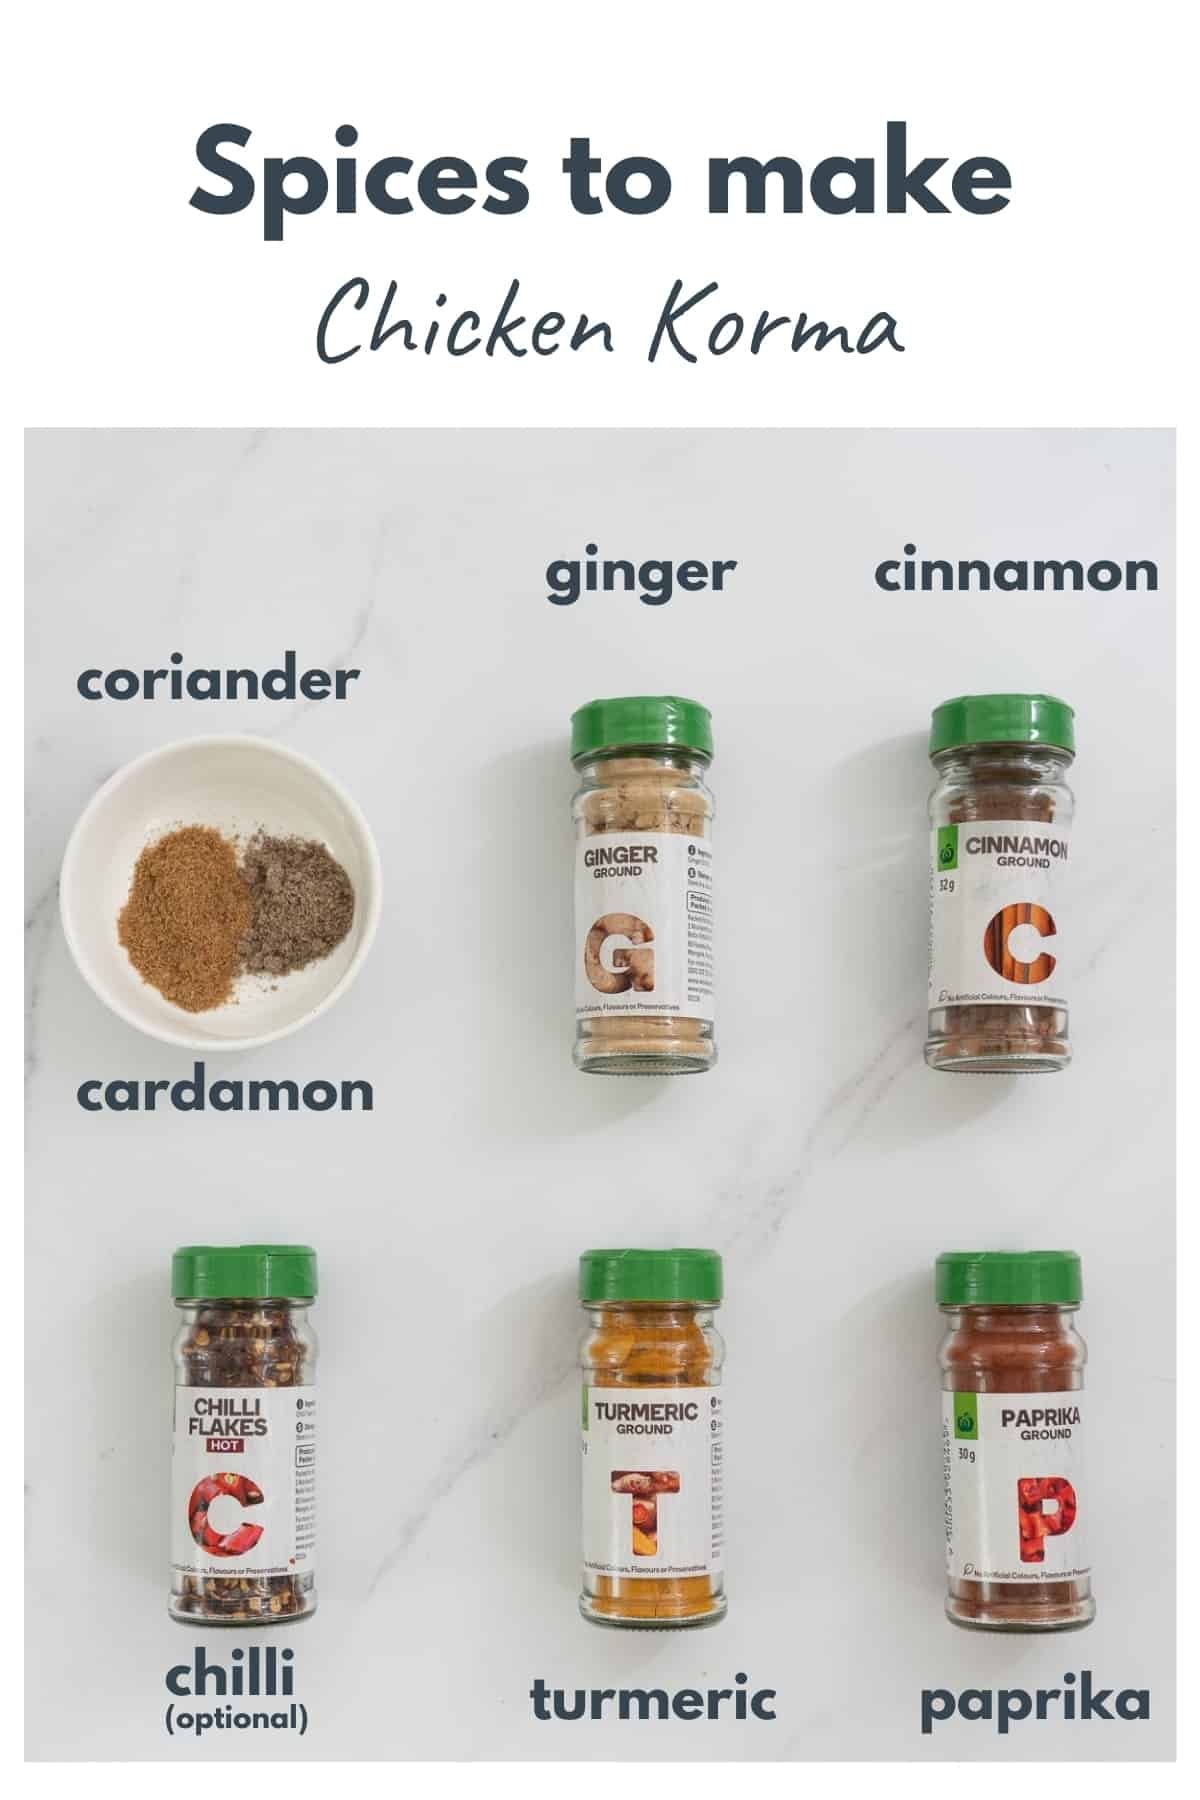 chicken korma spices laid out on a bench with text overlay